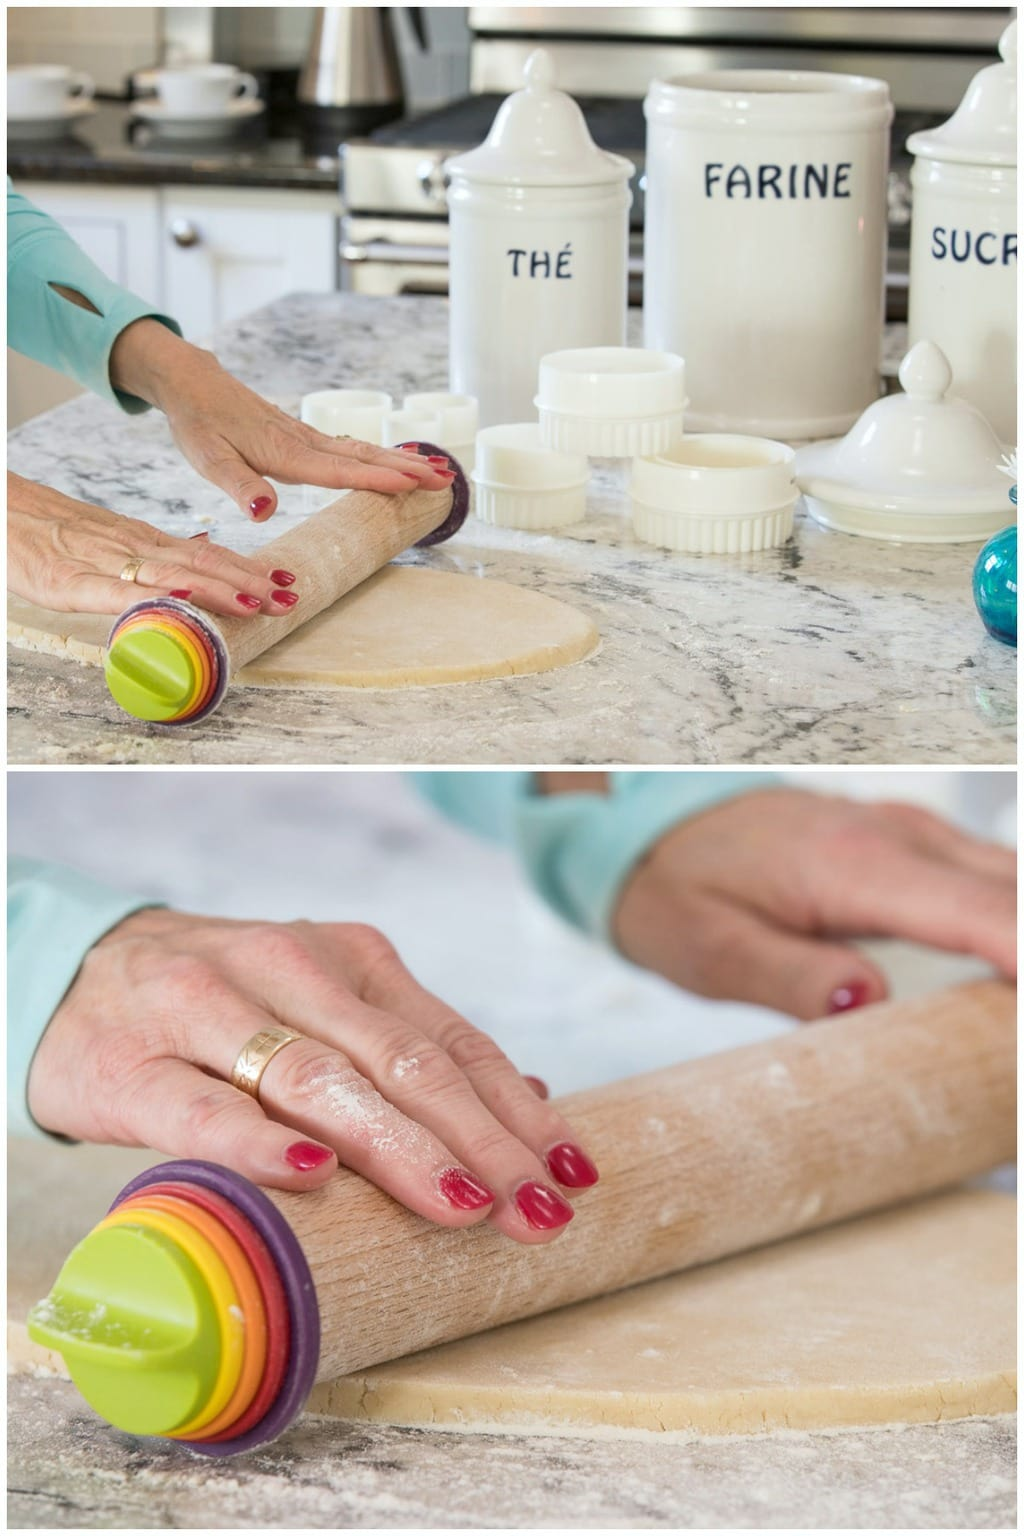 Photo of the special rolling pin used for making Christmas Tree Shortbread Cookies.